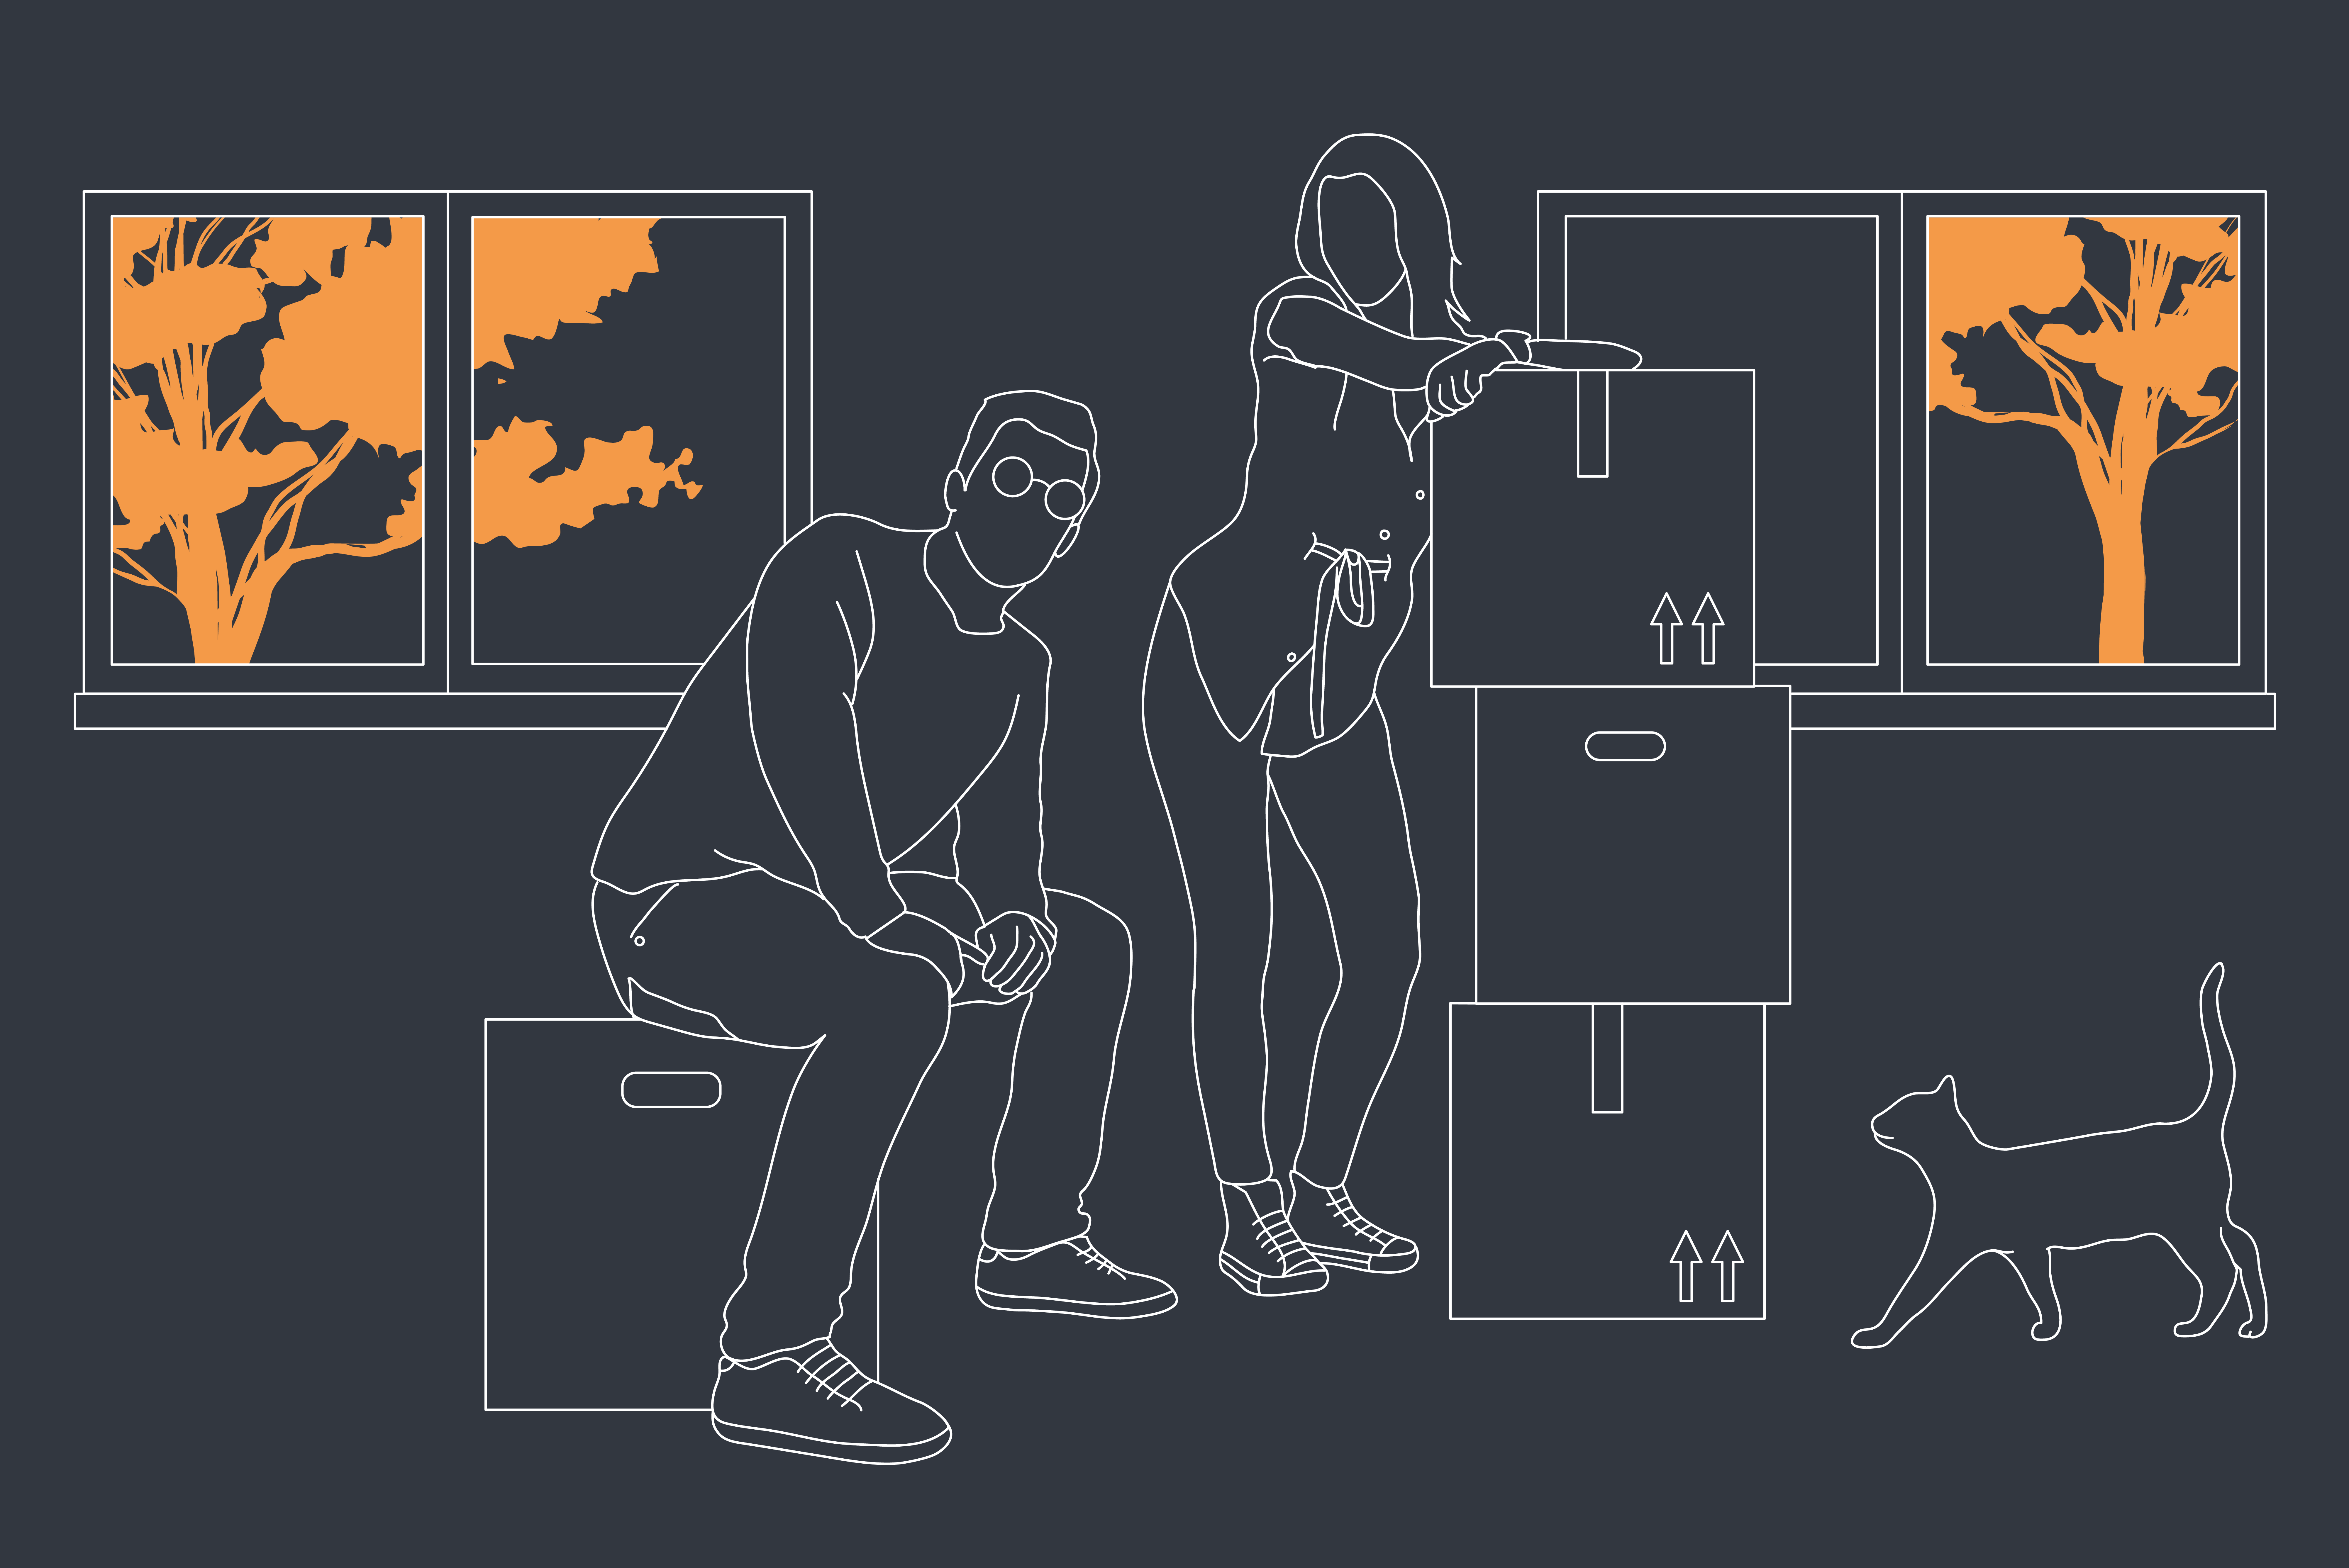 A illustration of two friends who purchased a house together moving in their personal possessions in the property with there pet cat in the frame